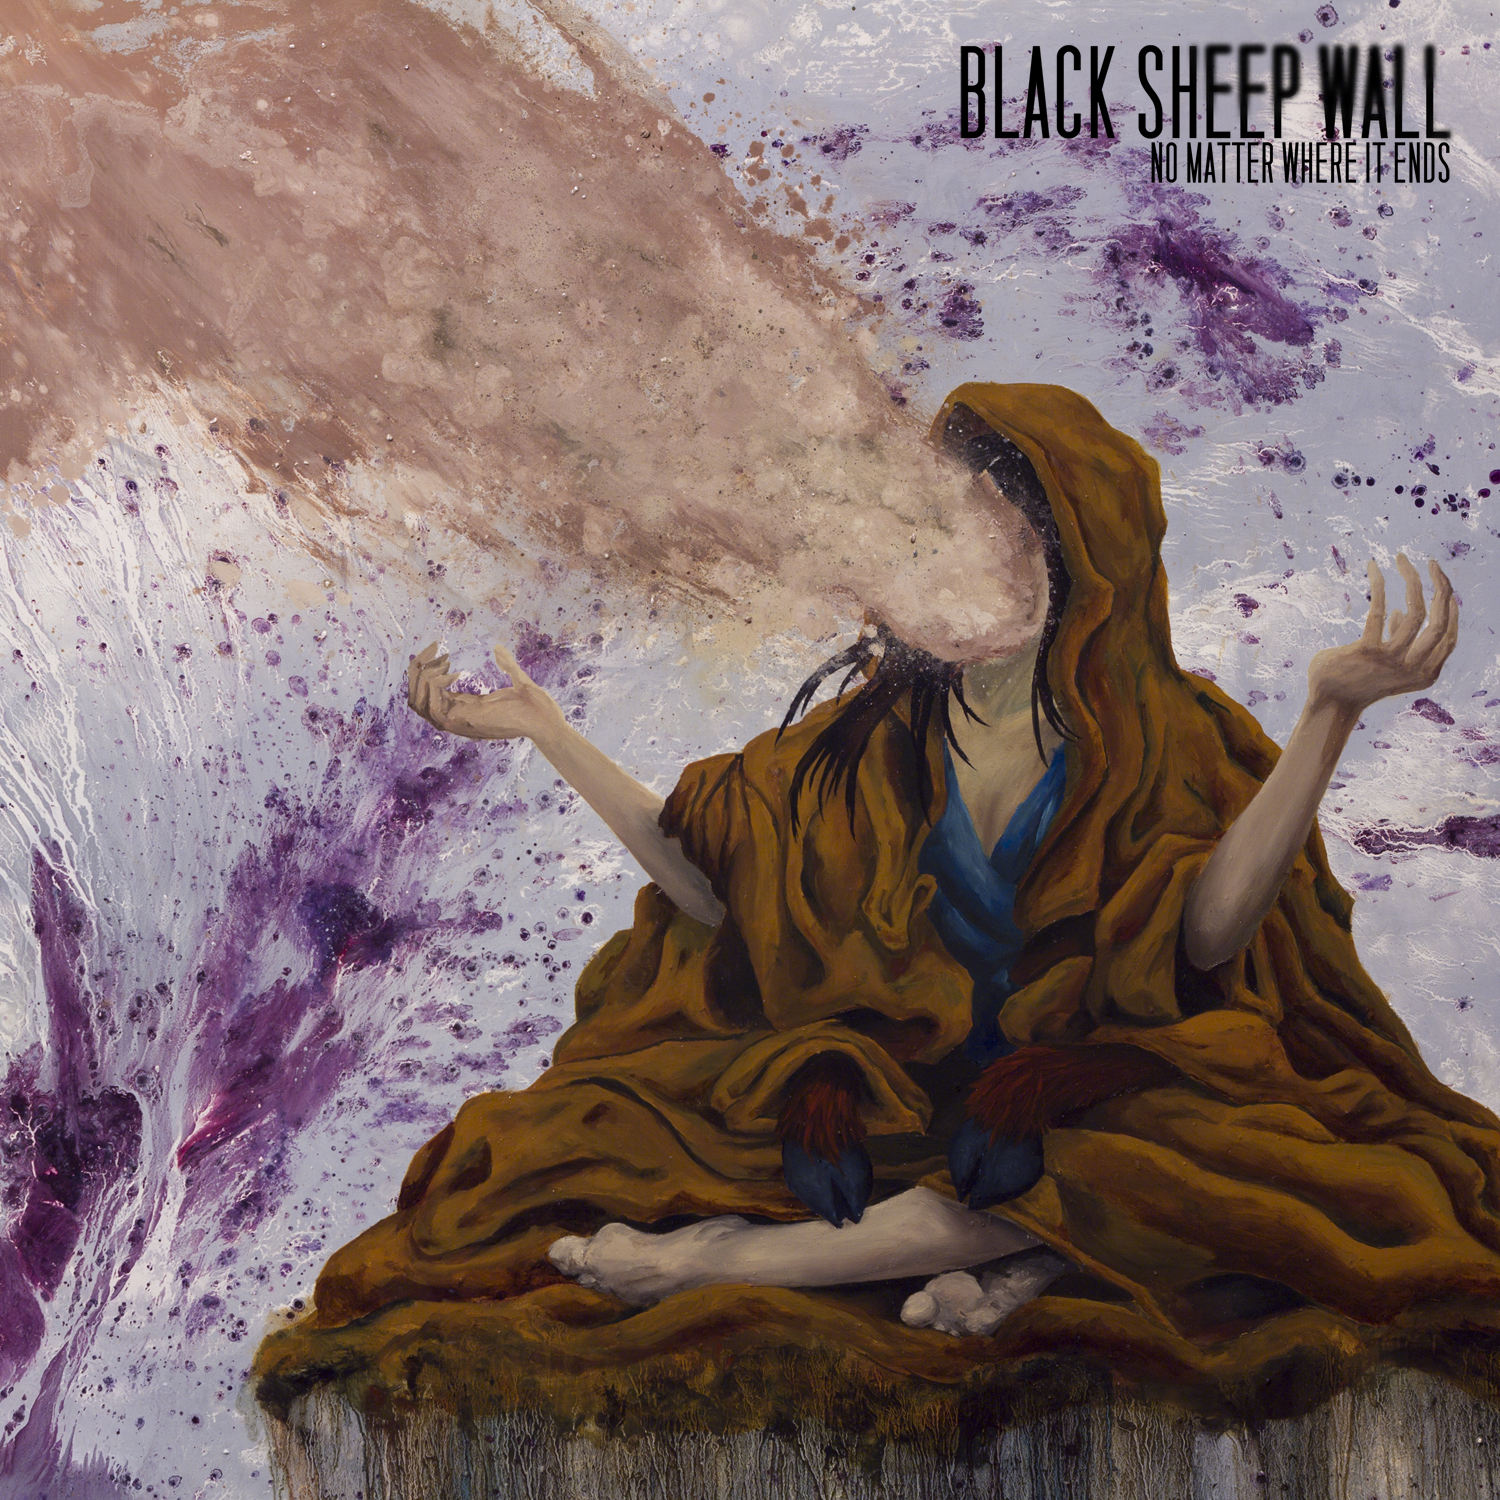 """Cover for Black Sheep Wall's """"No Matter Where It Ends."""" I did the complete artwork and layout for the album. Release on CD. Oil paint on board."""